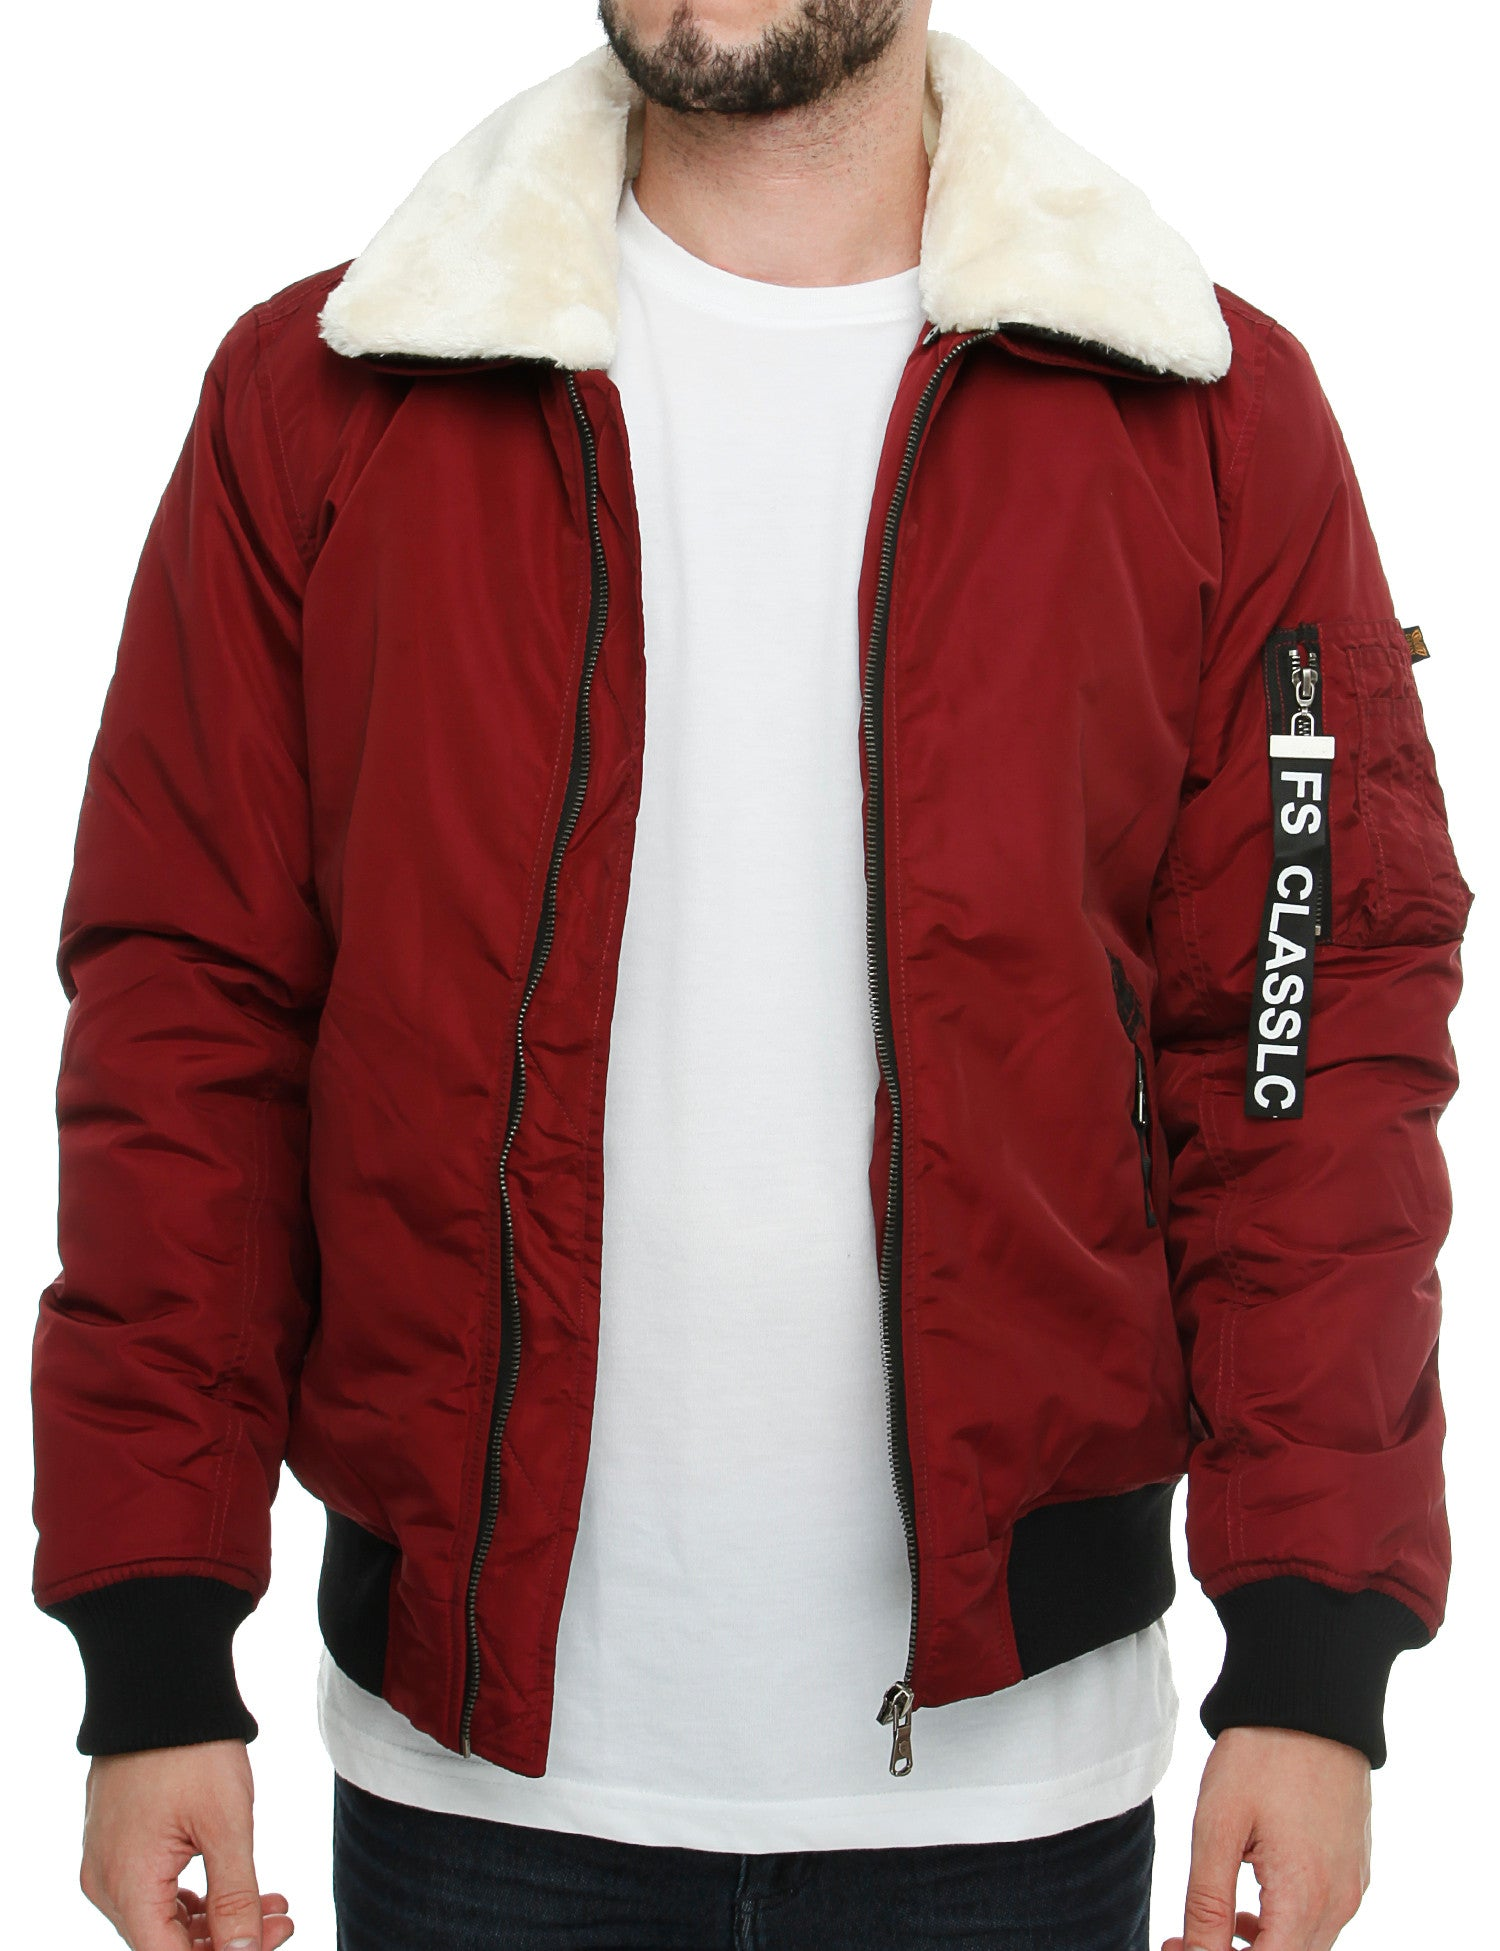 Free Side FS1009 Bomber Jacket  Red